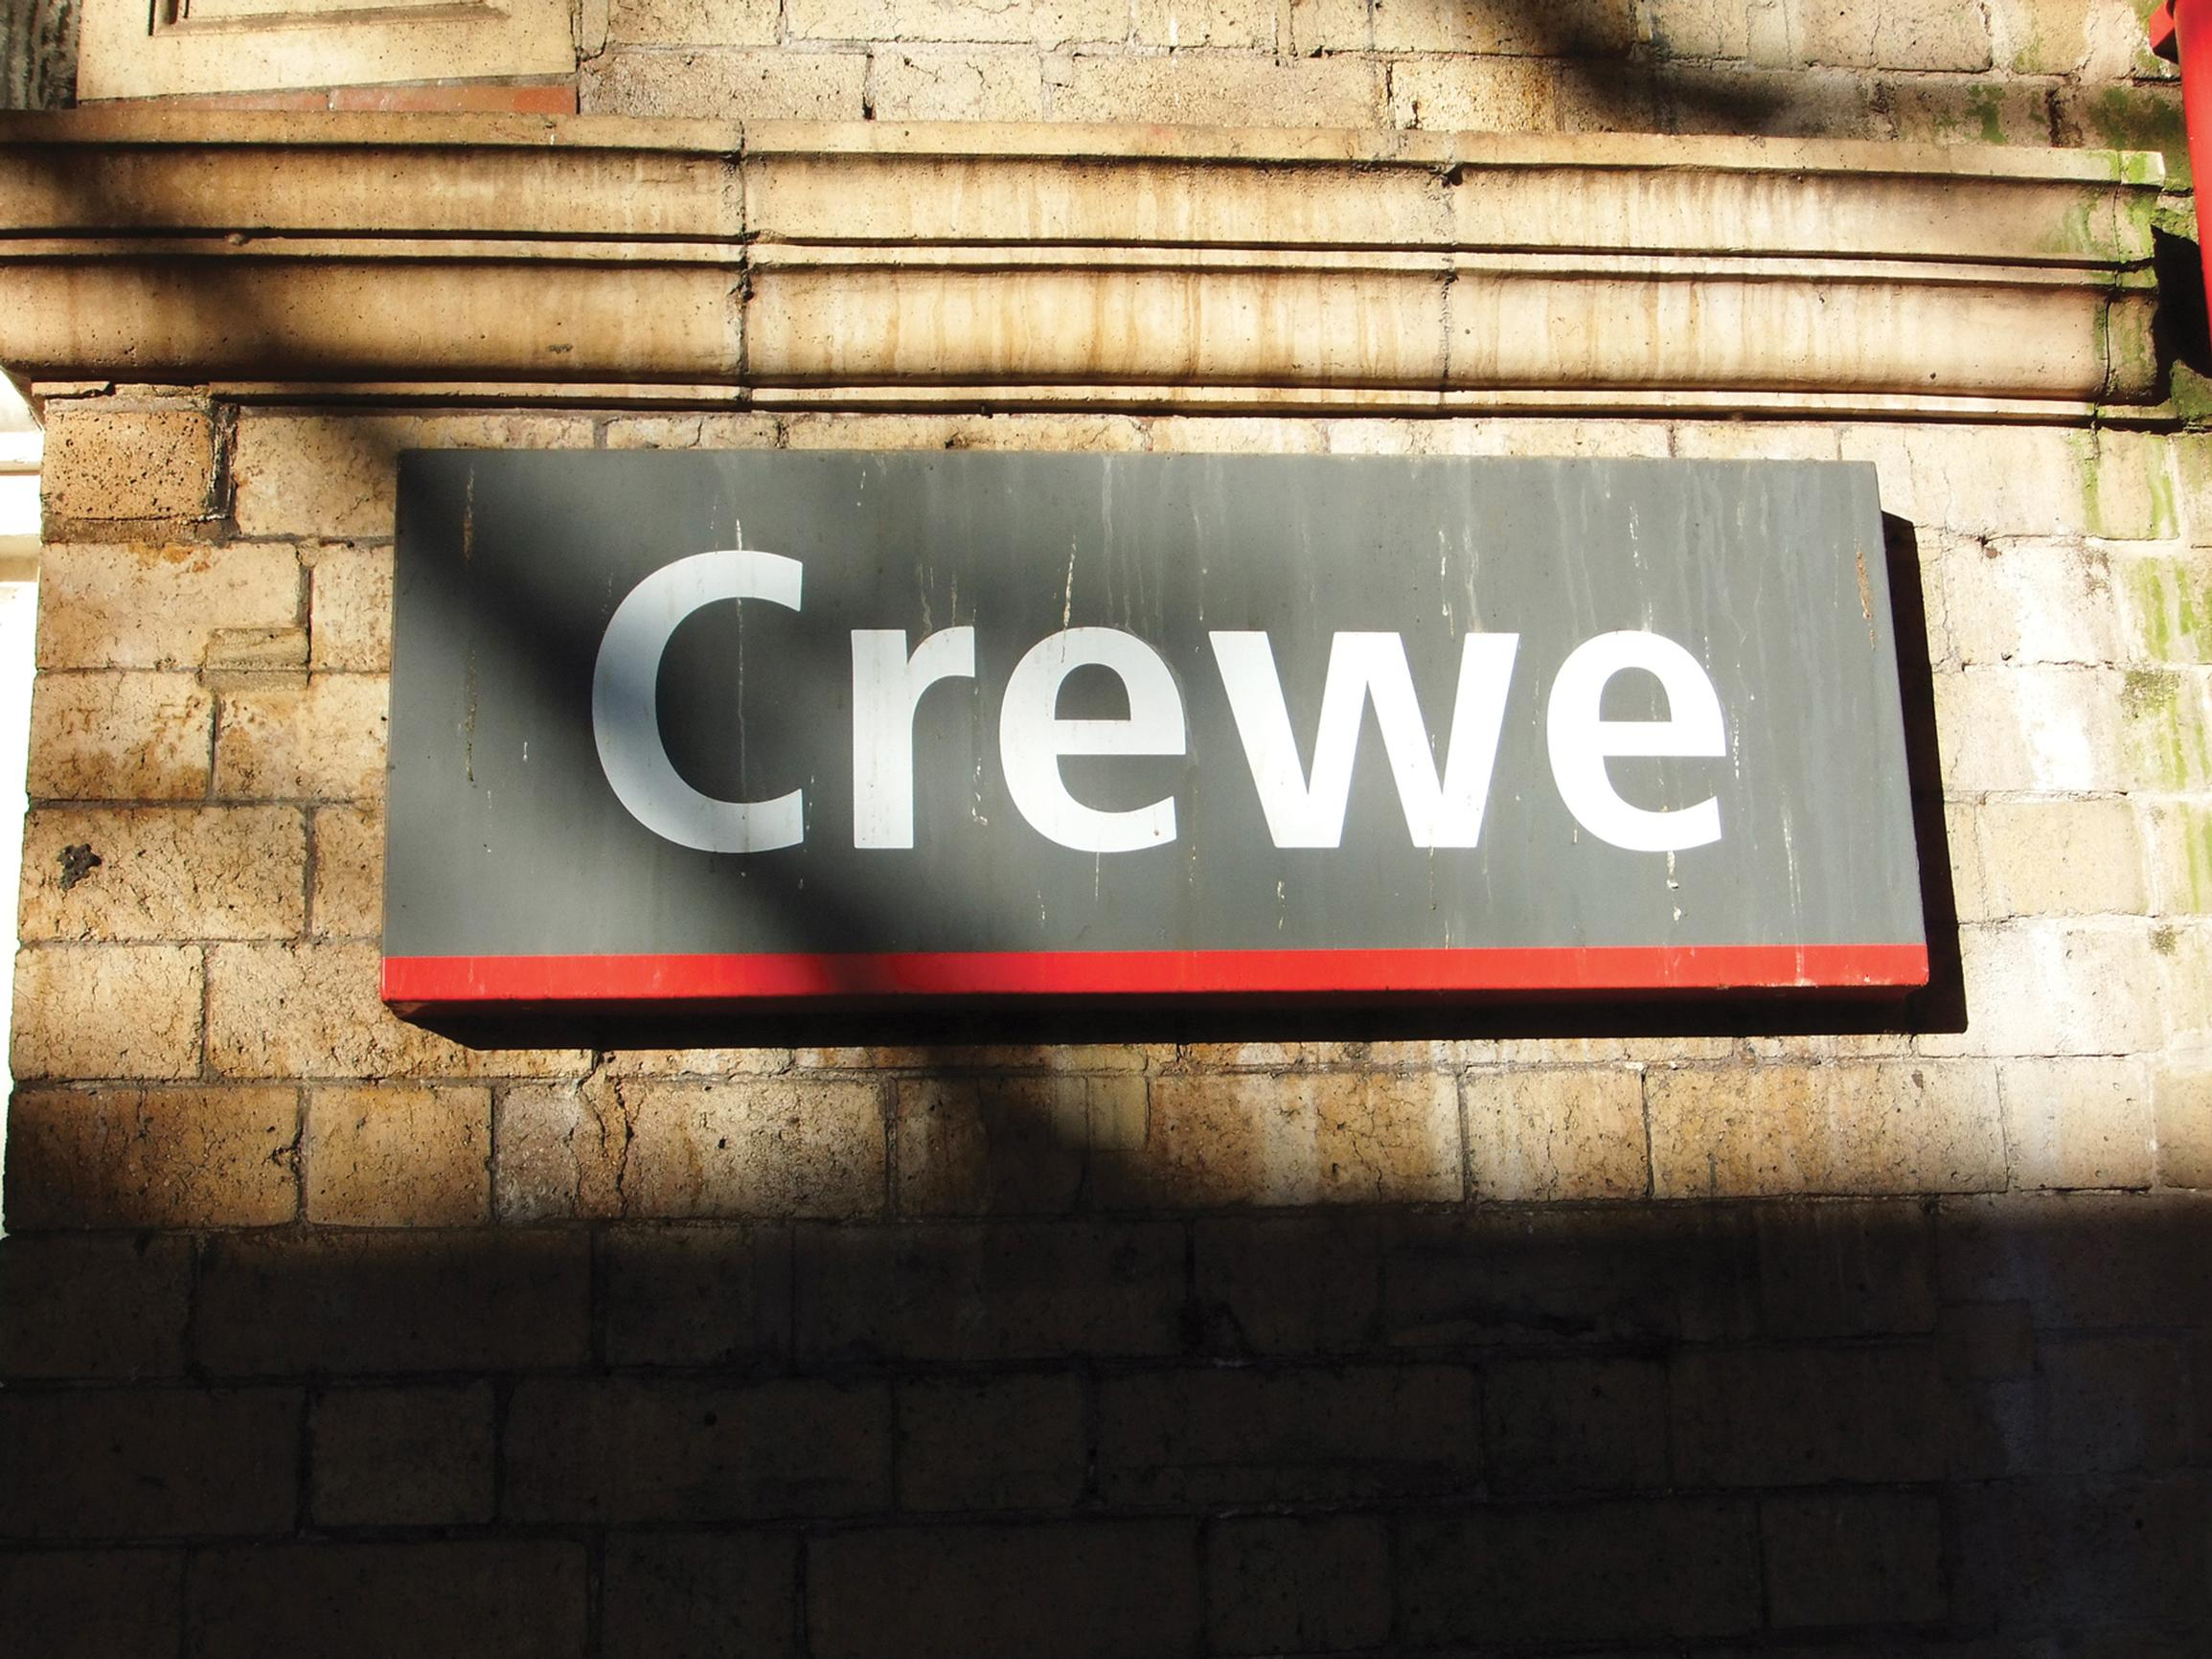 Longer platforms at Crewe could pave way for HS2 Hub